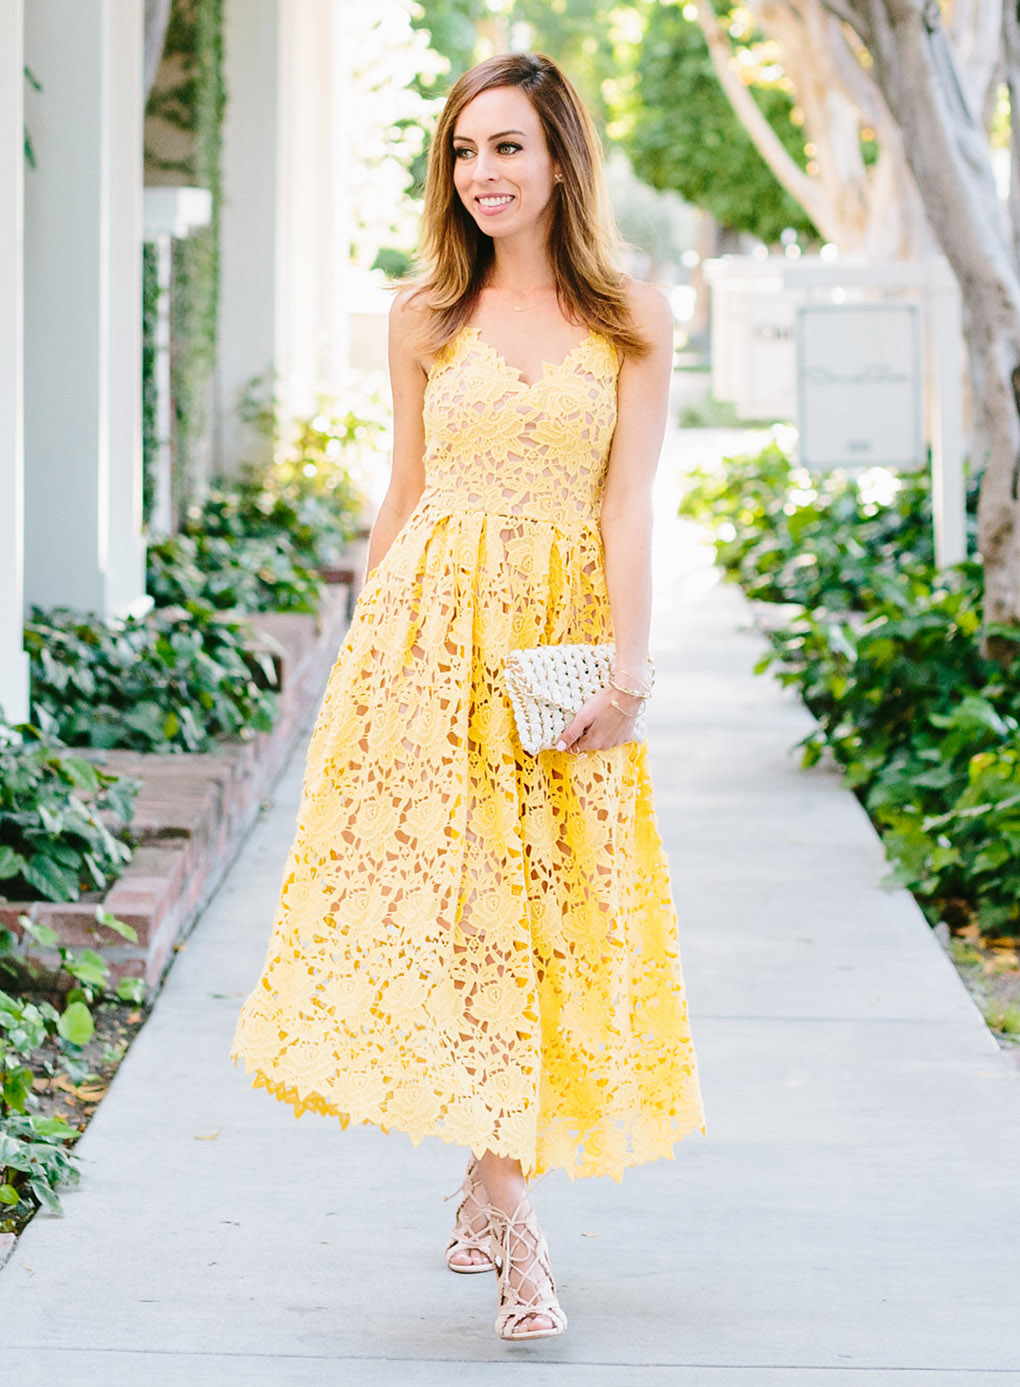 Sydne Style inspired by Miranda Kerr yellow lace dress for celebrity looks for less